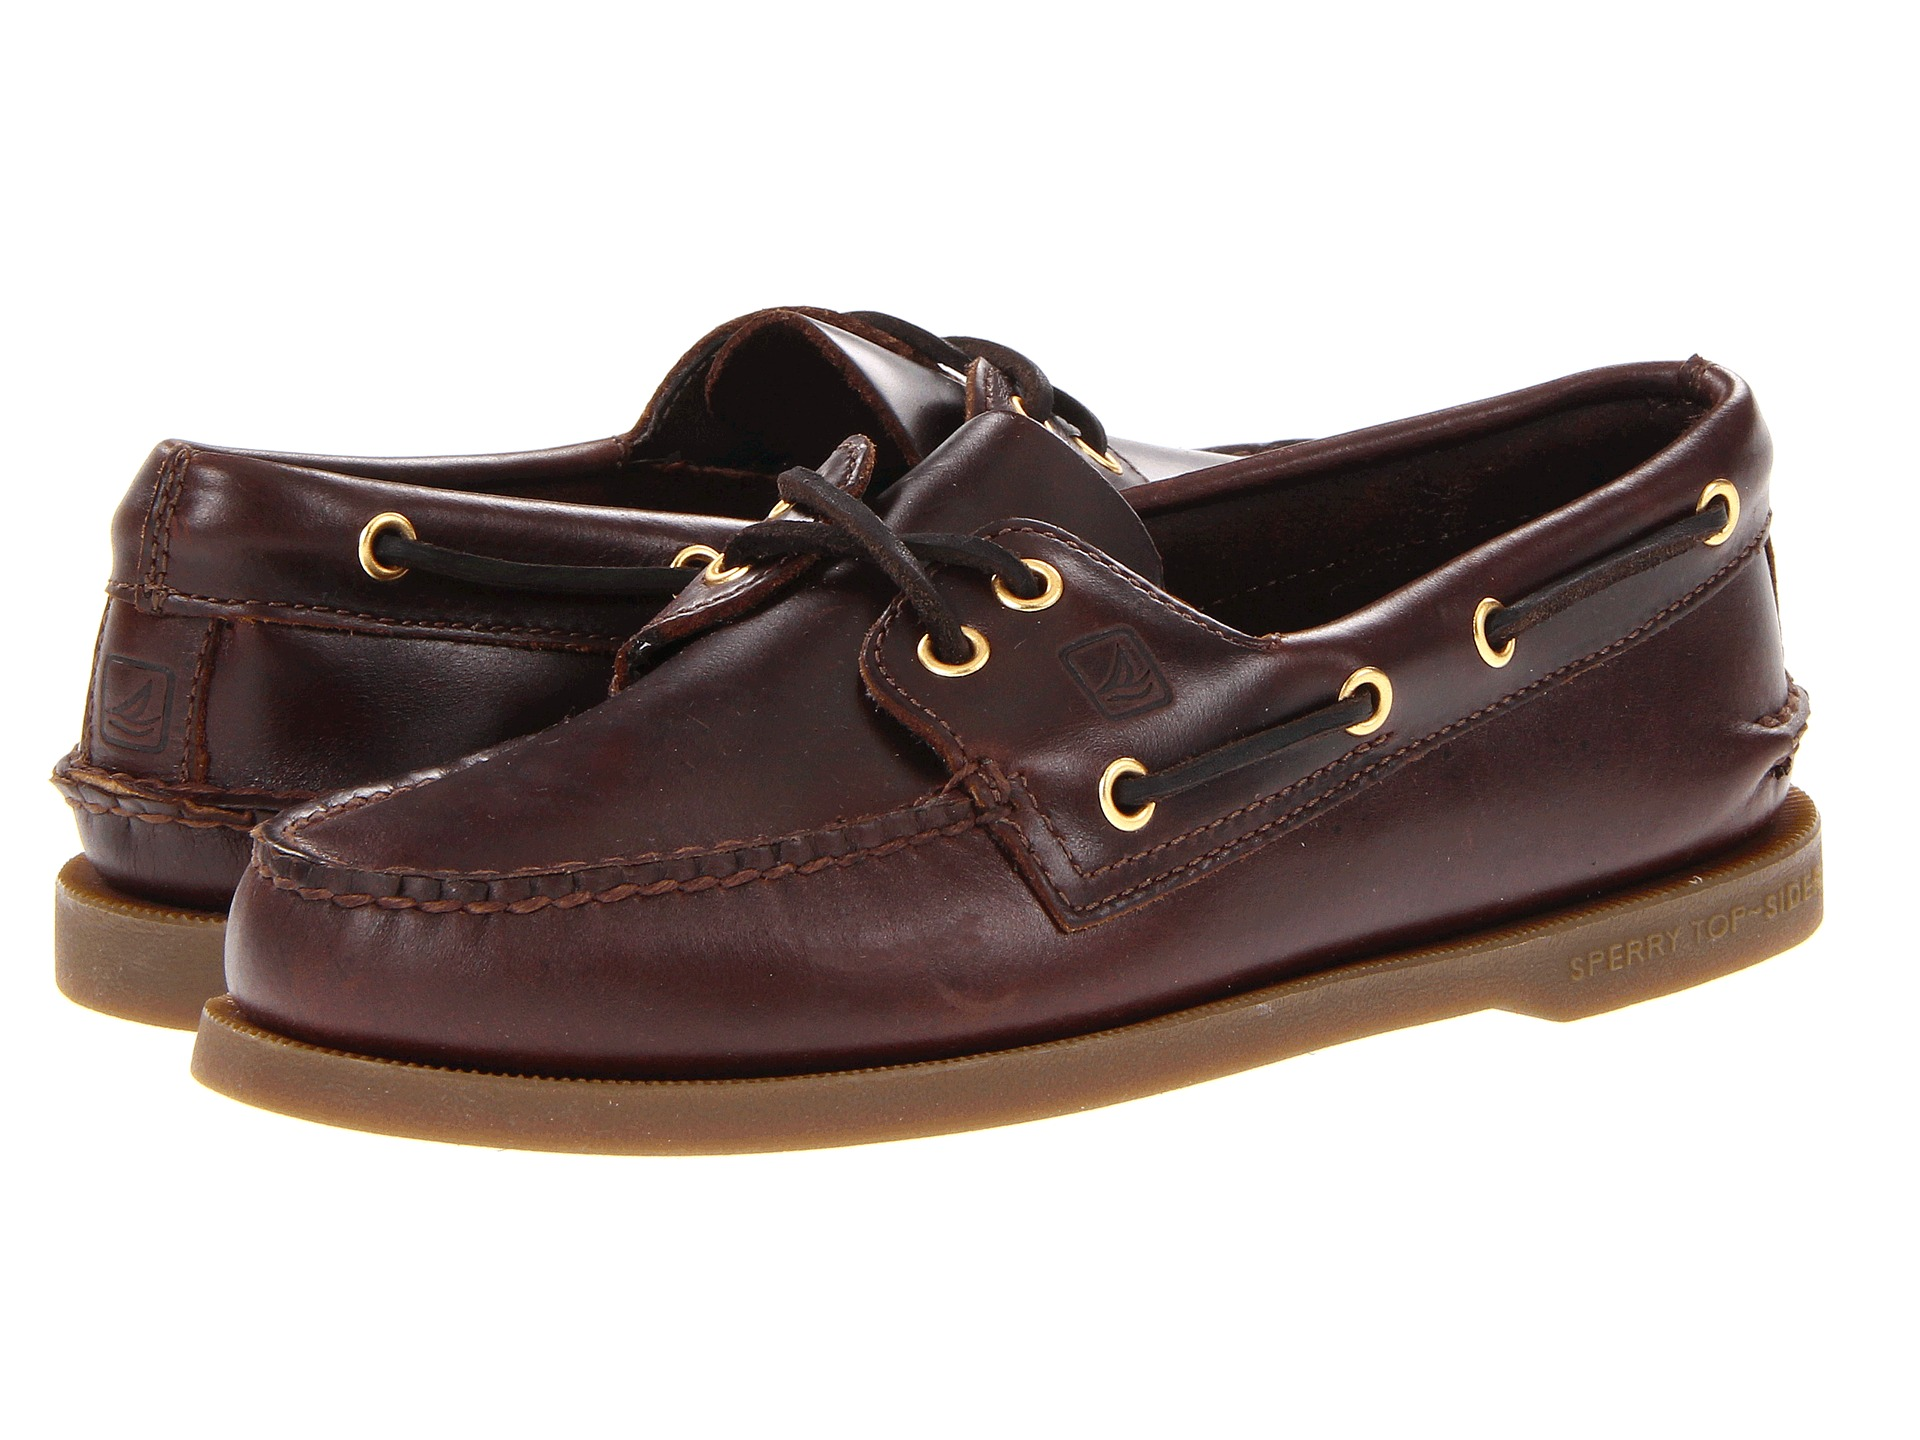 Sperry Top Sider Authentic Original Boat Shoe Amaretto